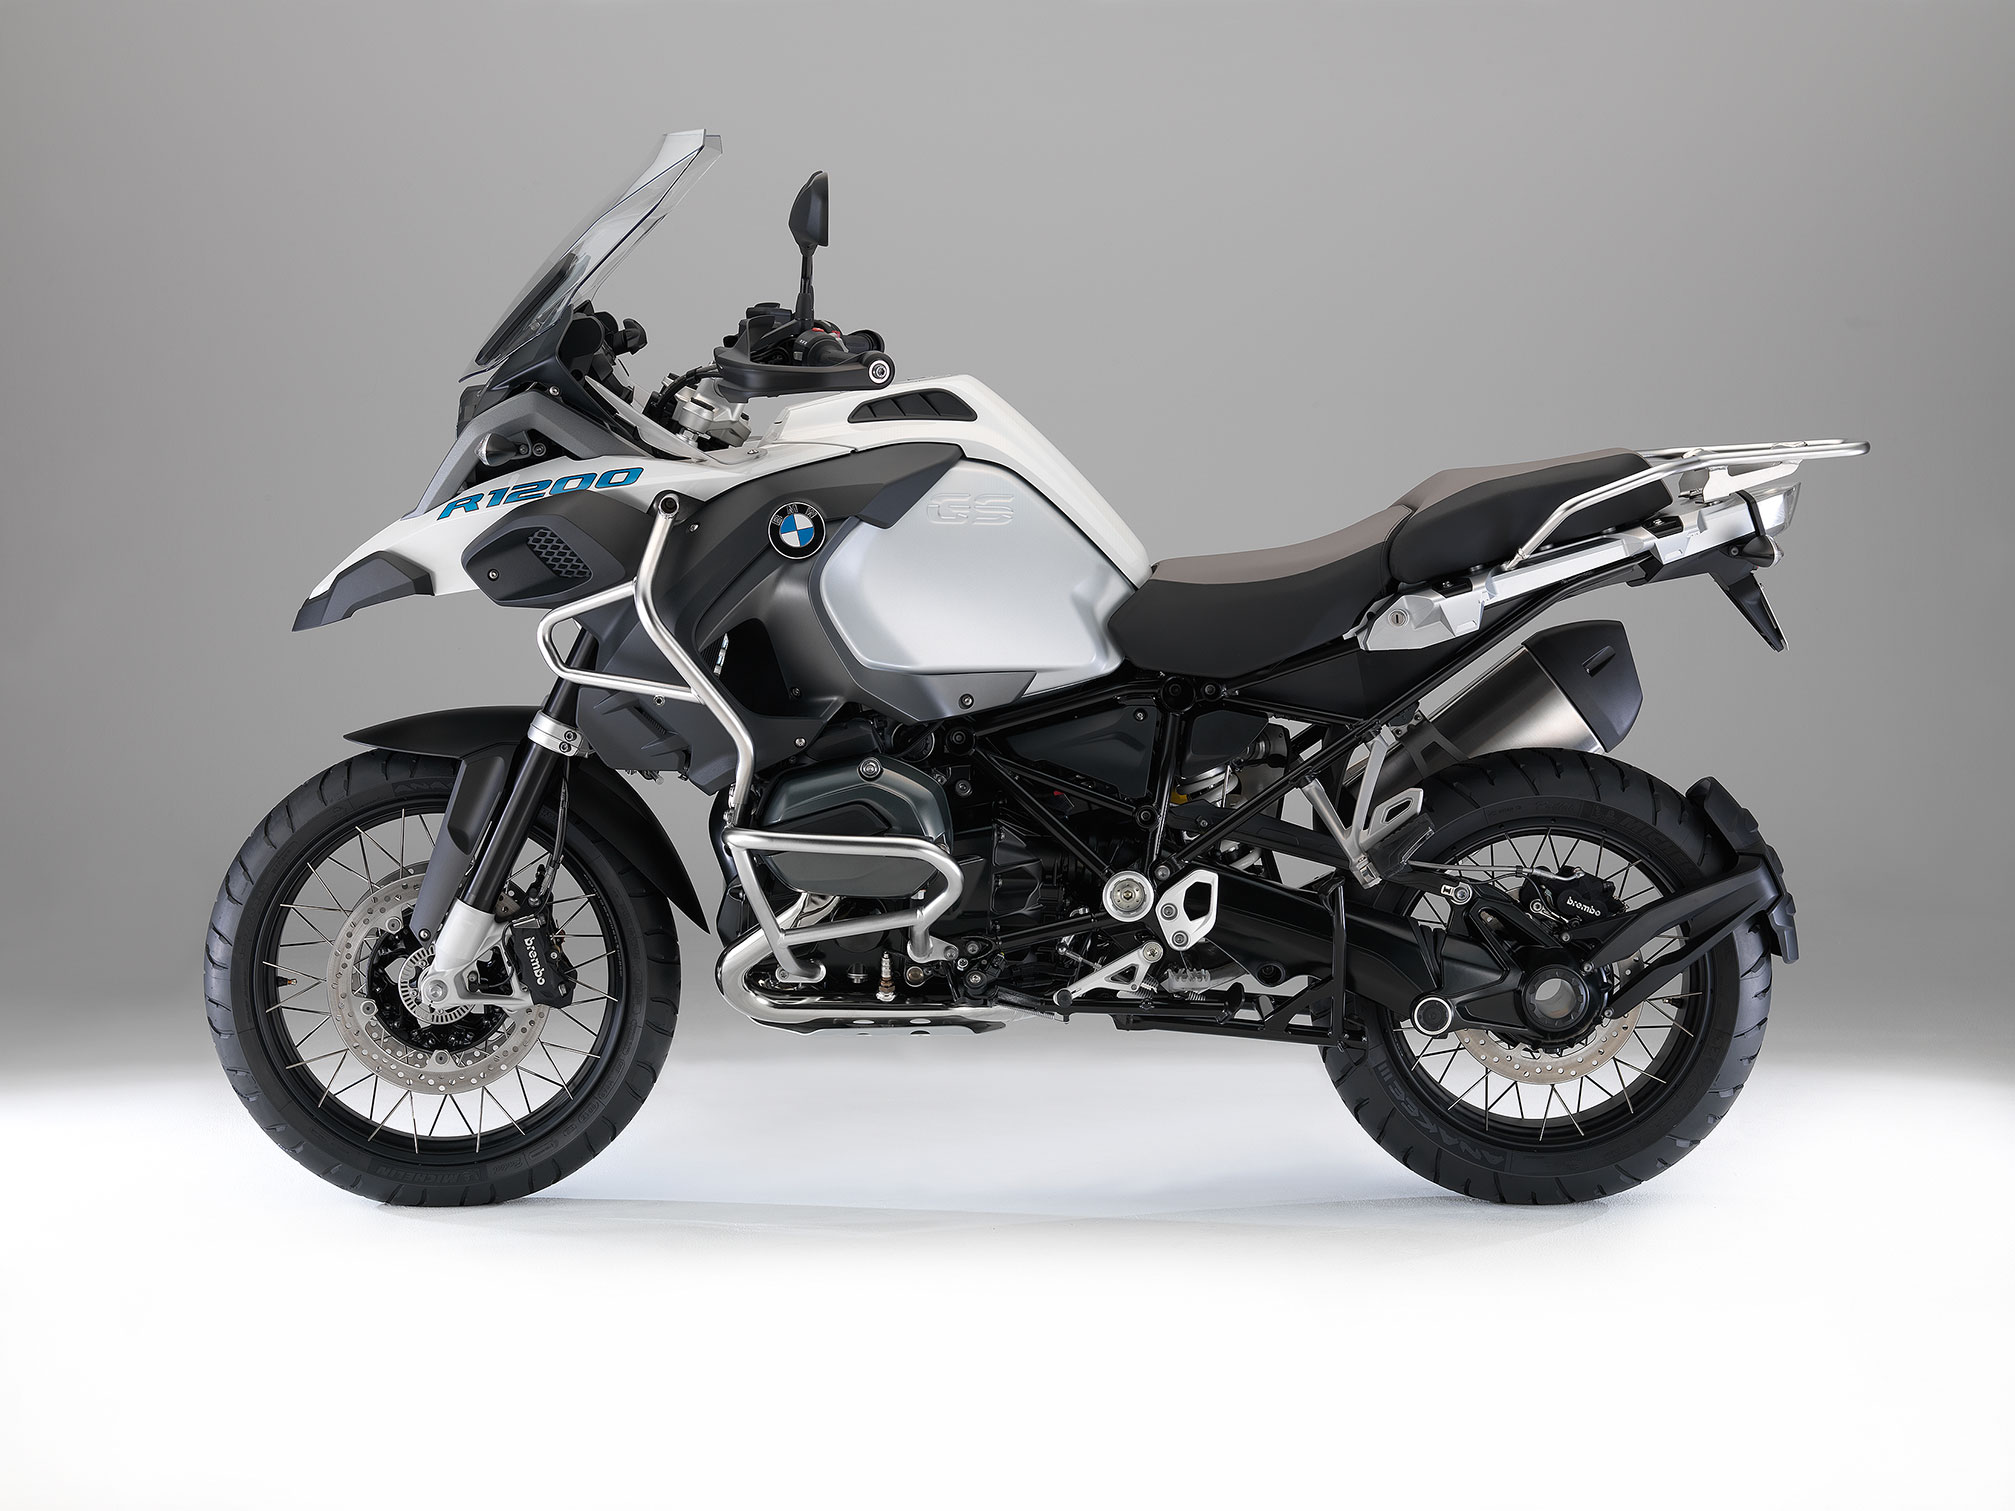 bmw r 1200 gs adventure. Black Bedroom Furniture Sets. Home Design Ideas